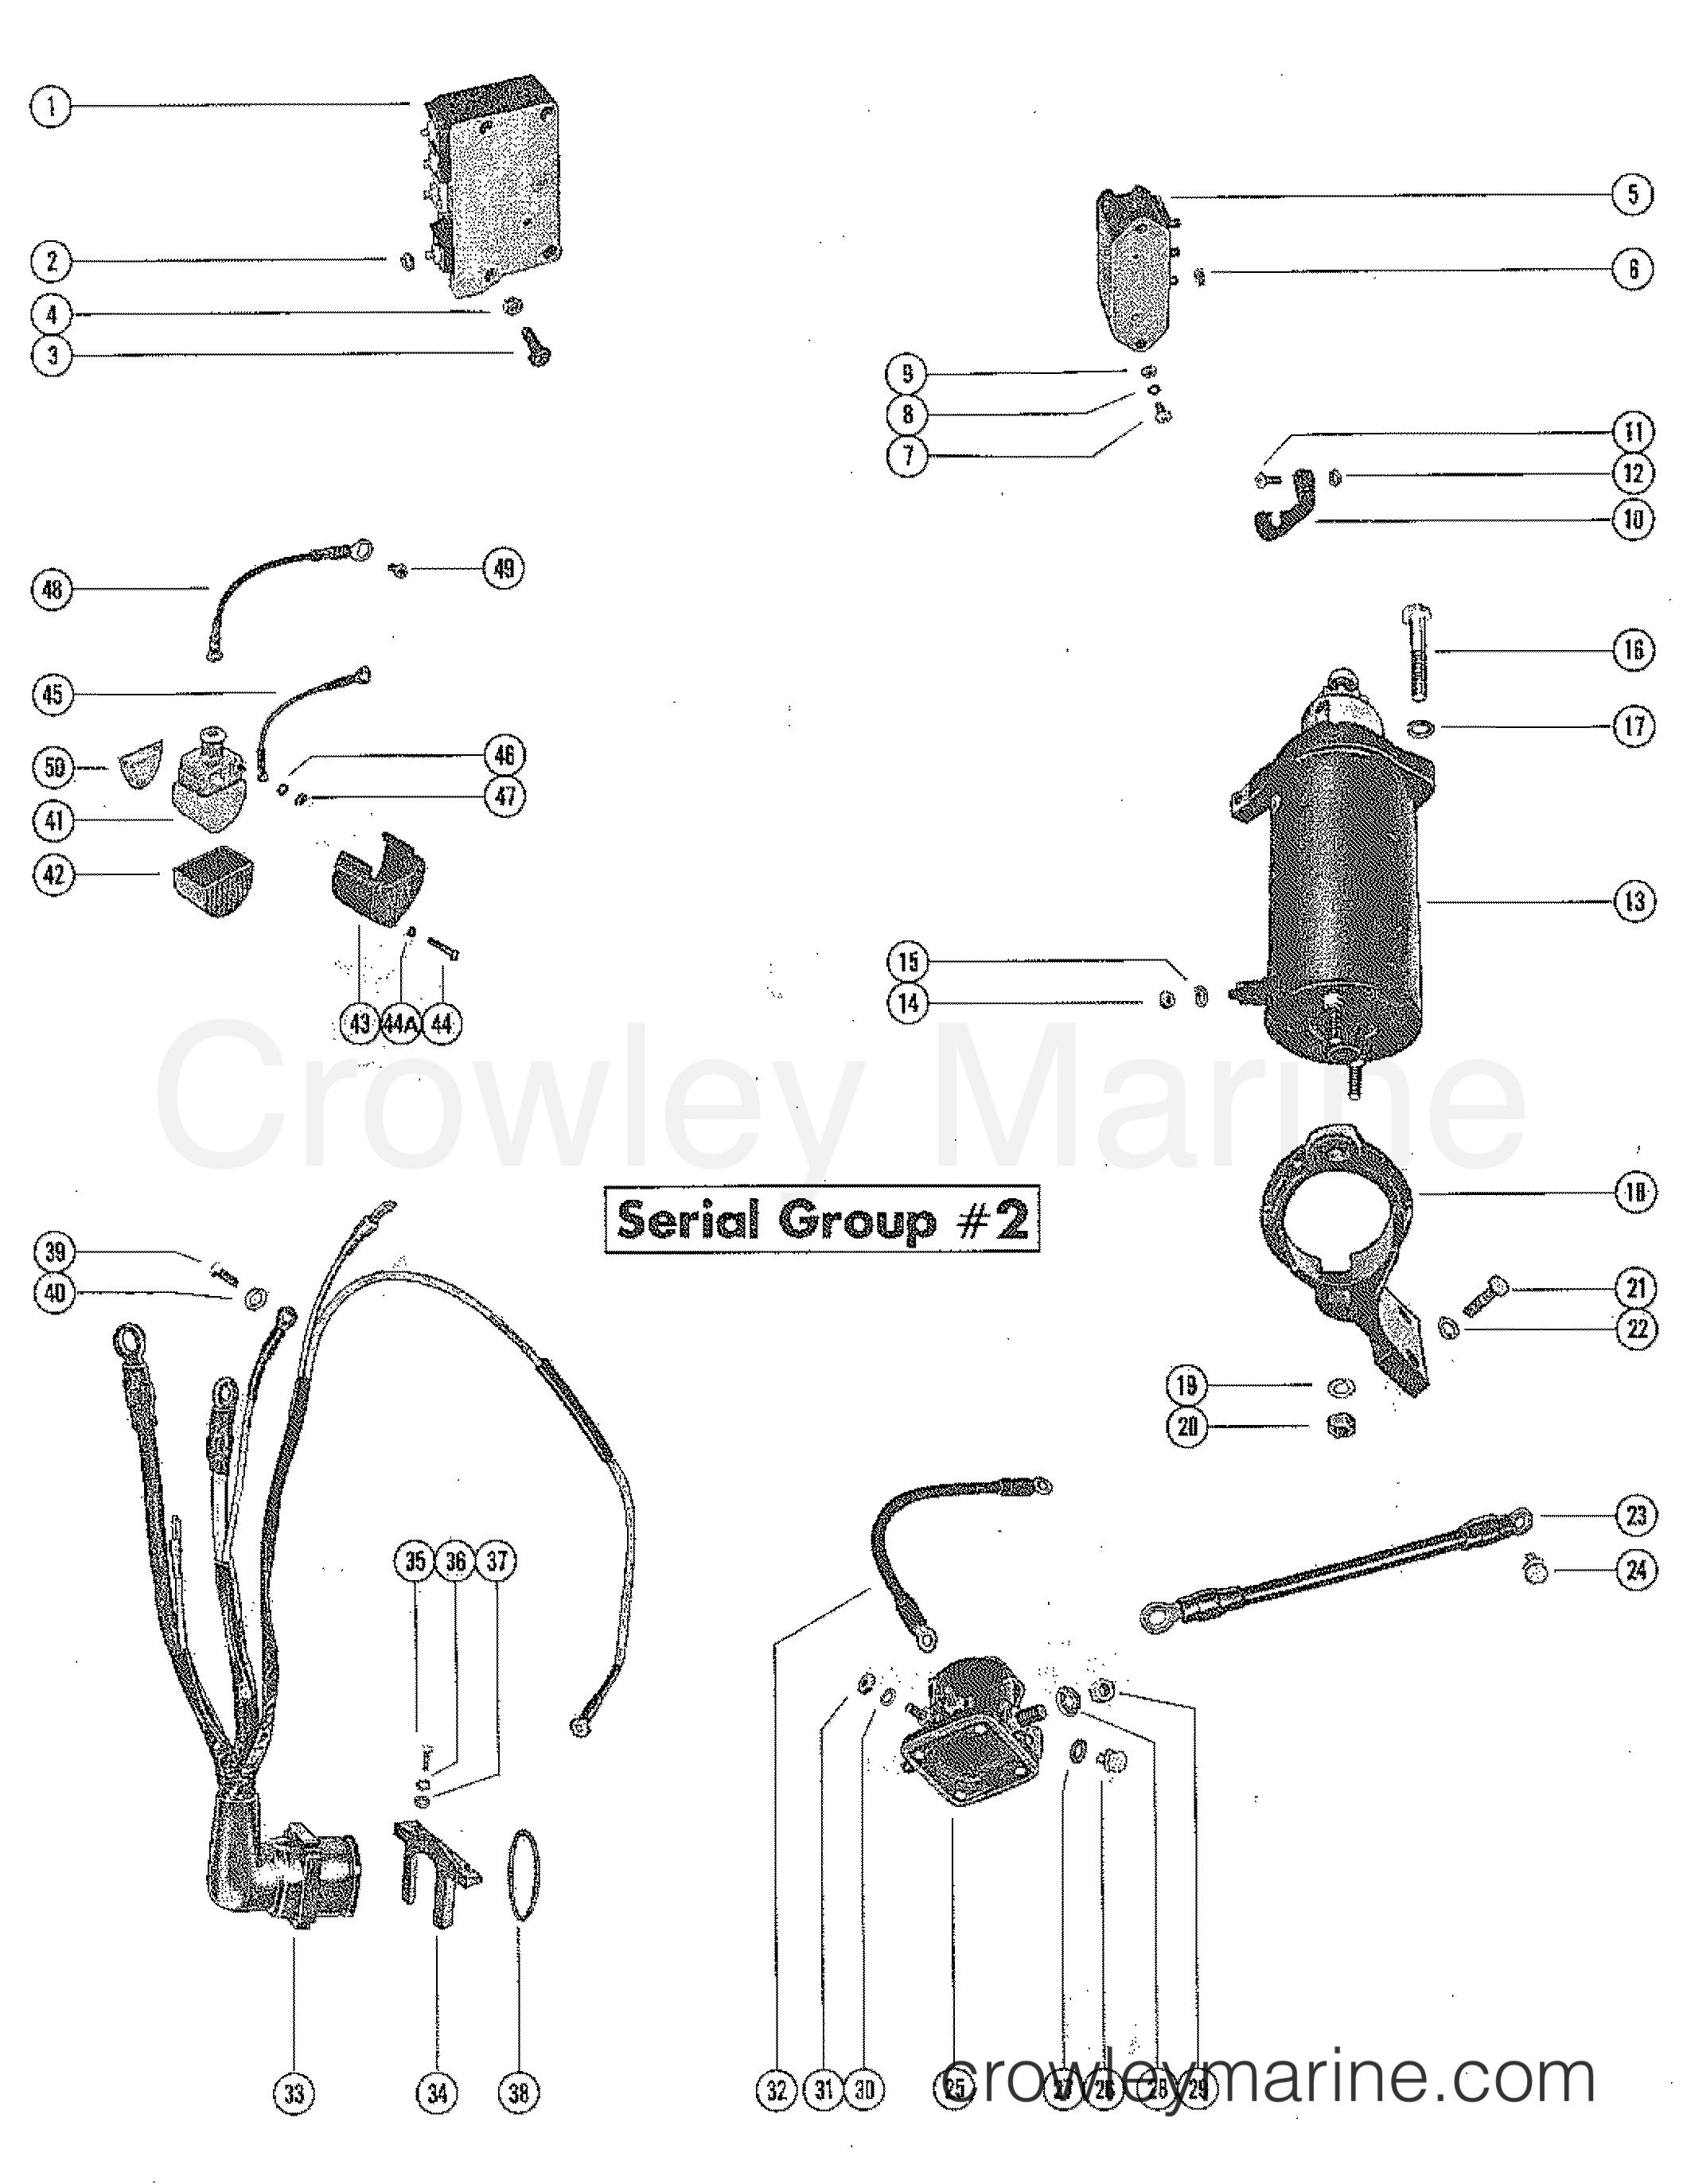 Starter Motor And Wiring Harness Serial Group 2